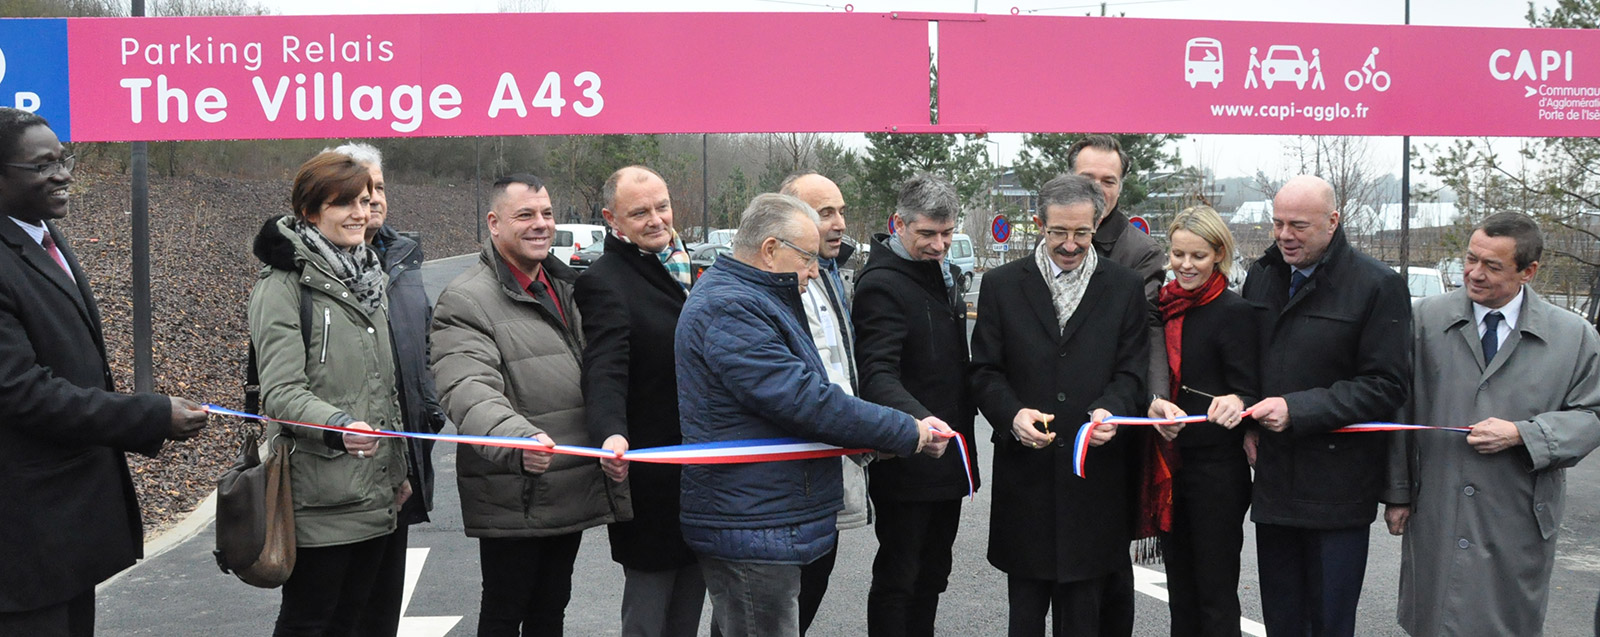 Inauguration du parking de covoiturage «The Village A43»